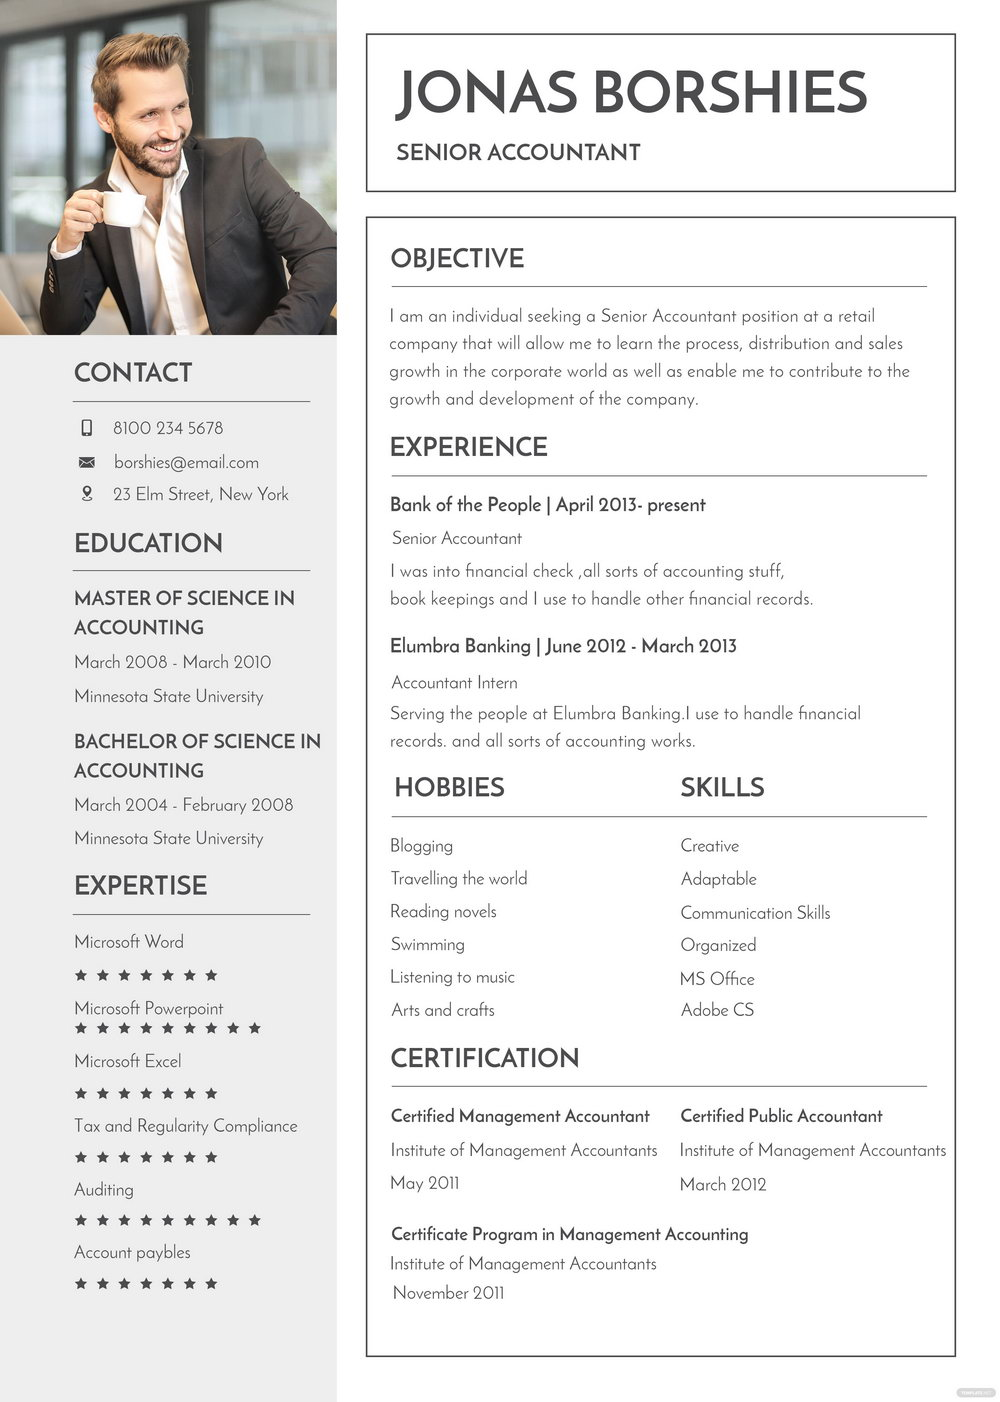 Resume Templates For Banking Professionals